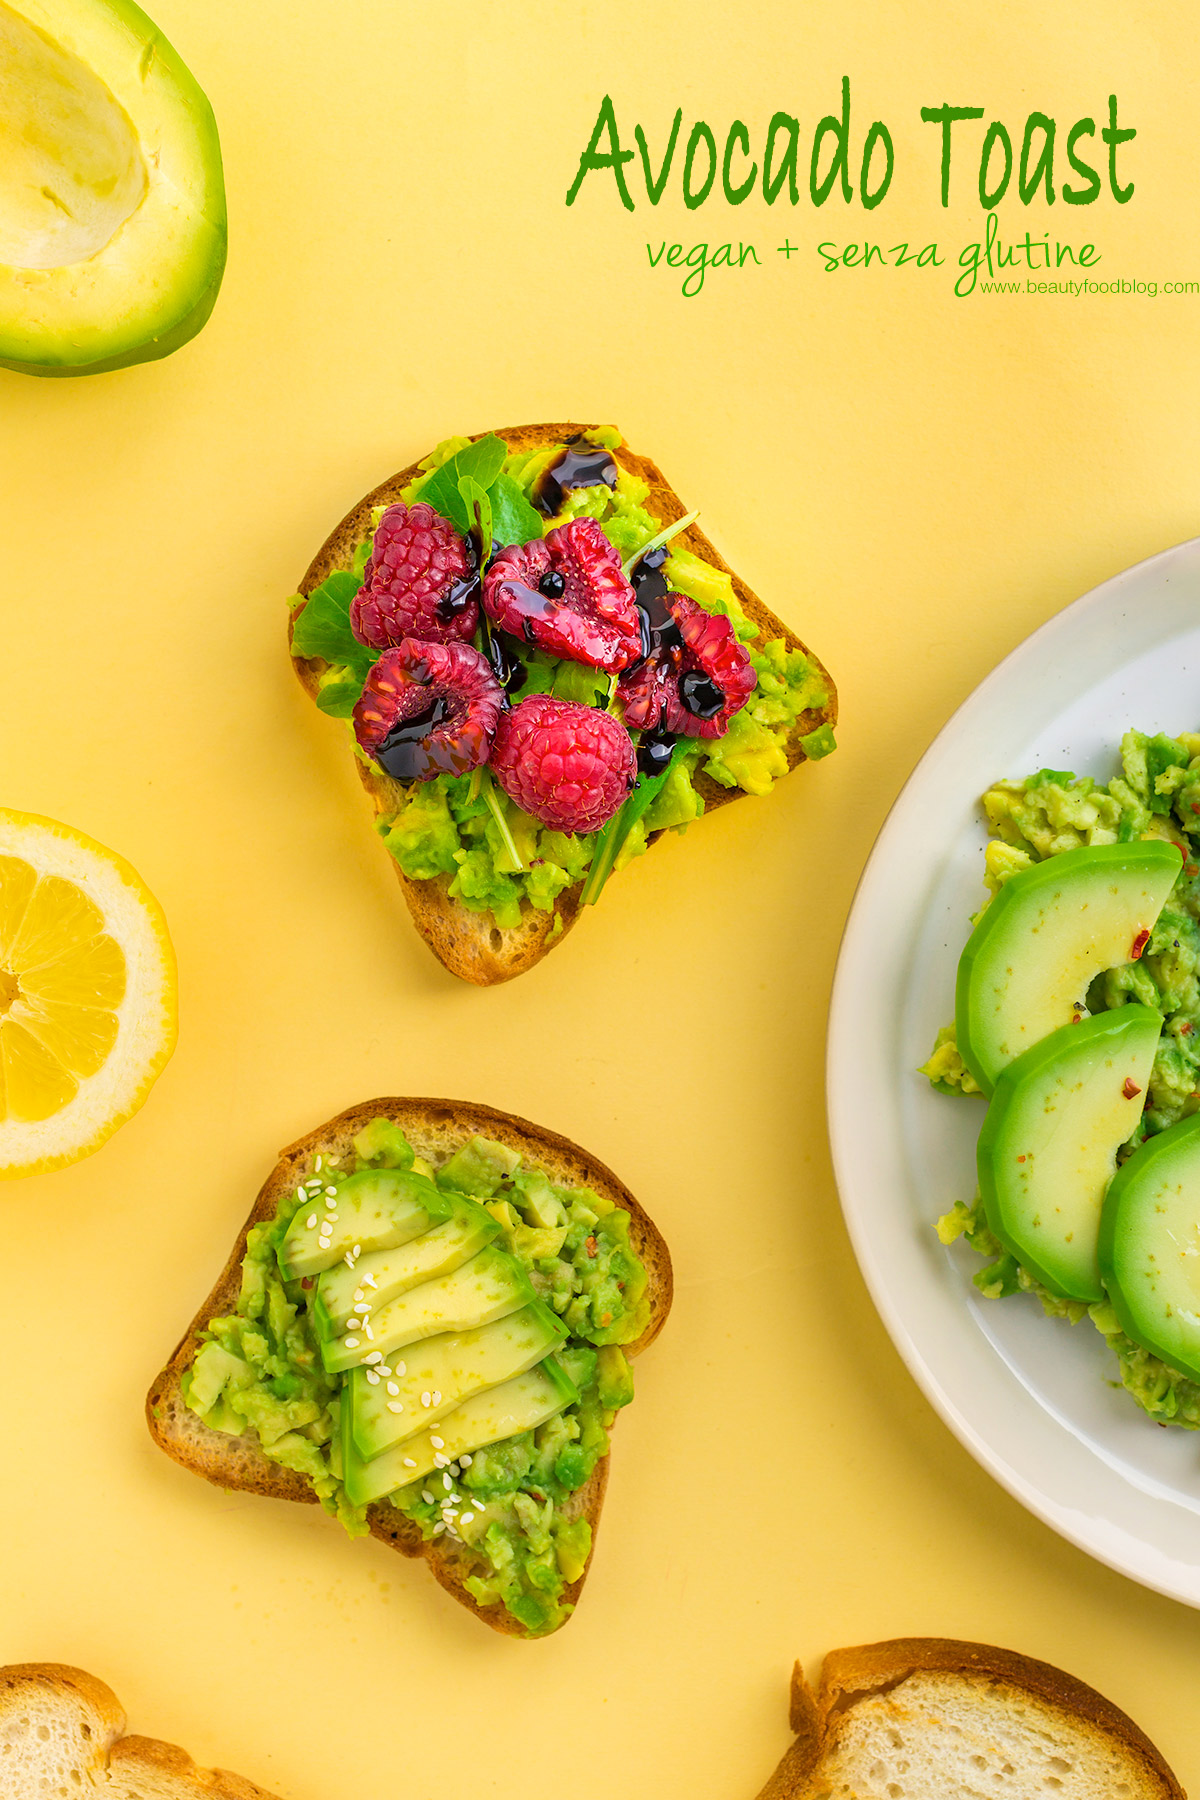 easy glutenfree vegan avocado toast recipe with raspberry -ricetta avocado toast vegan senza glutine con lamponi facile e veloce pinterest